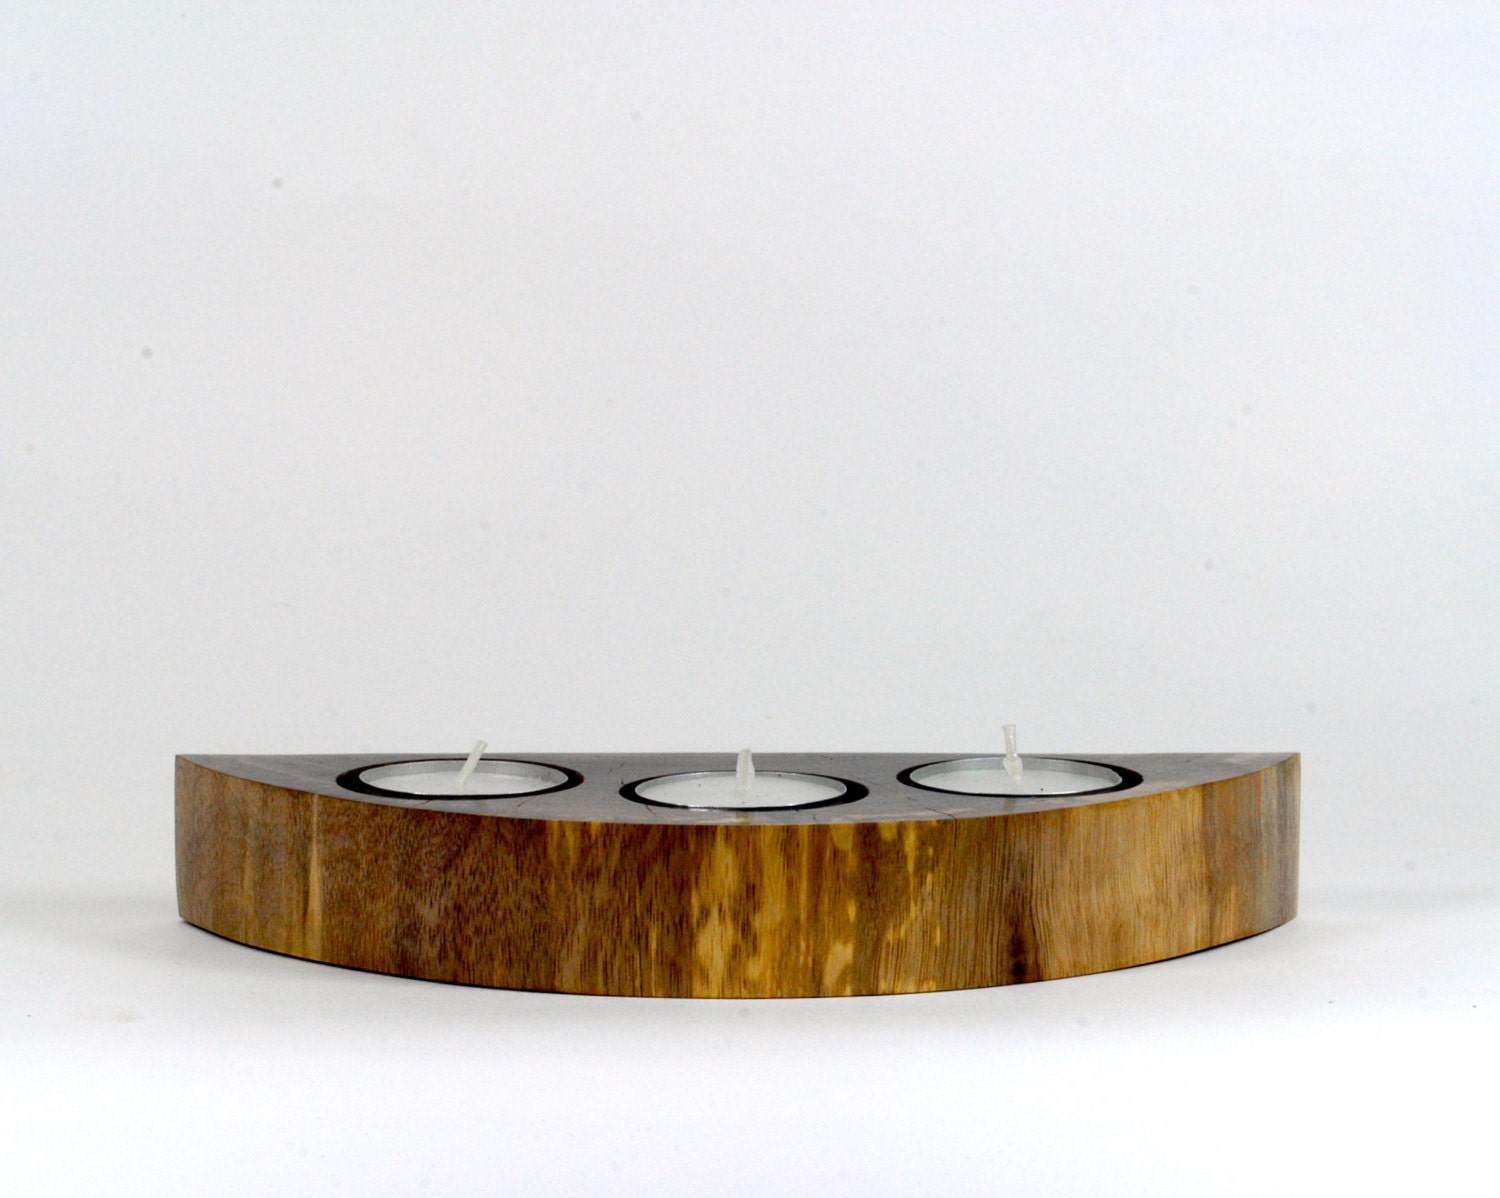 Wood Candle Holder Tea Light Holder By Goodvillagewoodcraft